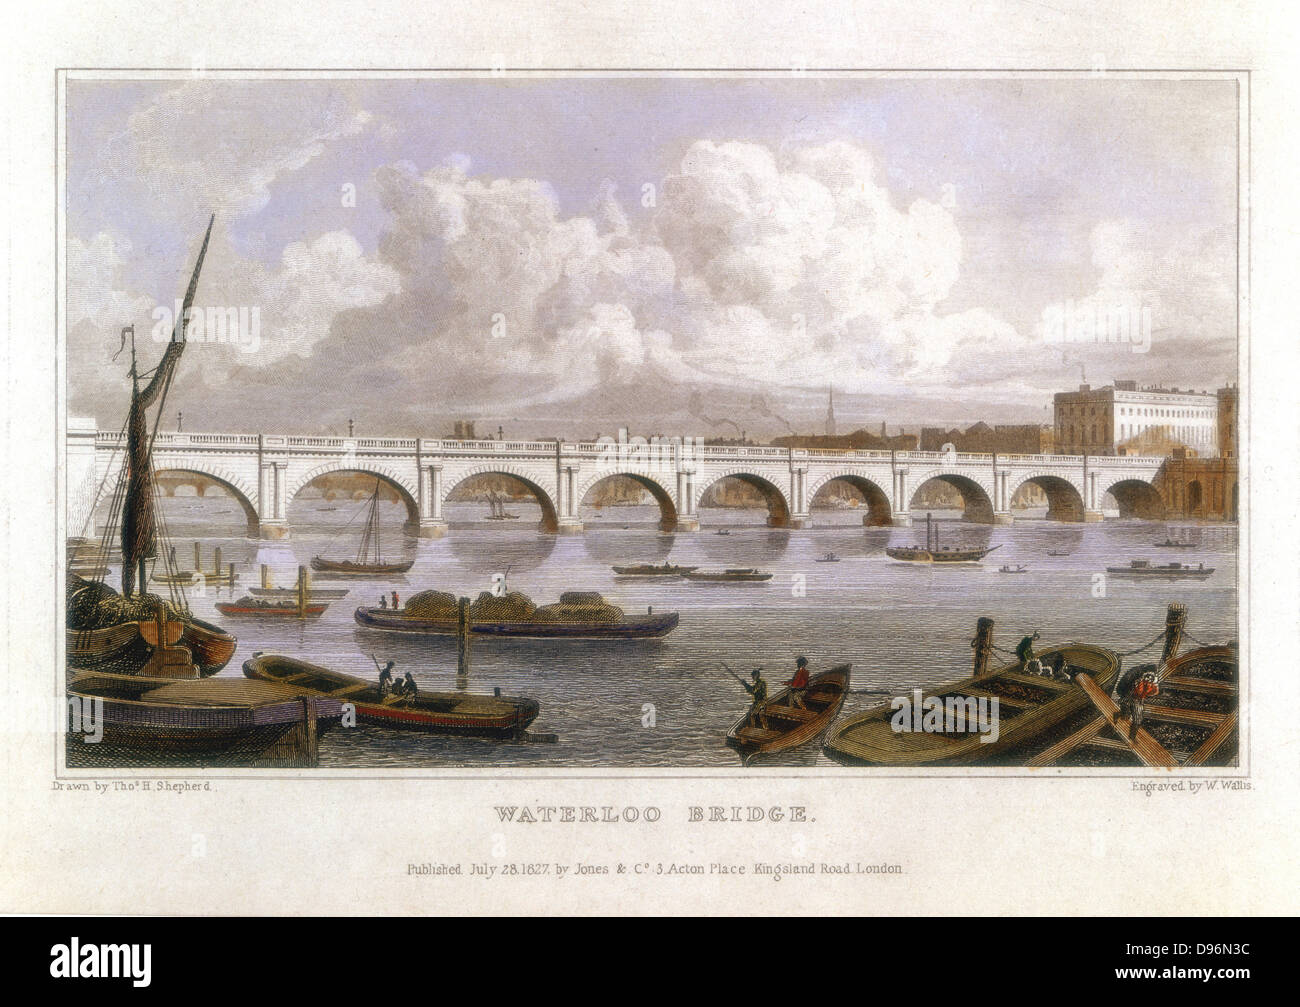 Waterloo Bridge, London, across the Thames. Built by John Rennie (1761-1821) between 1811 and 1817. Coffer dams Stock Photo